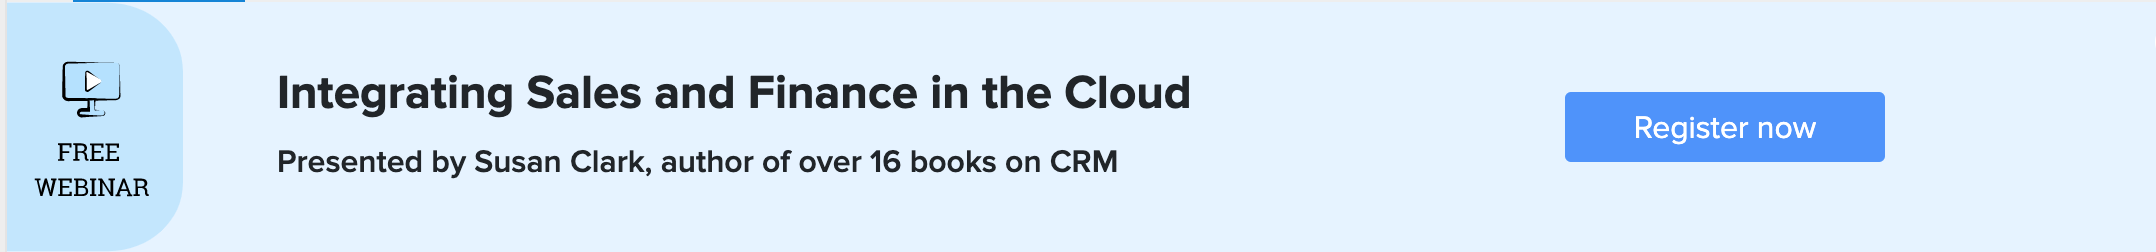 Integrating Sales and Finance in the Cloud